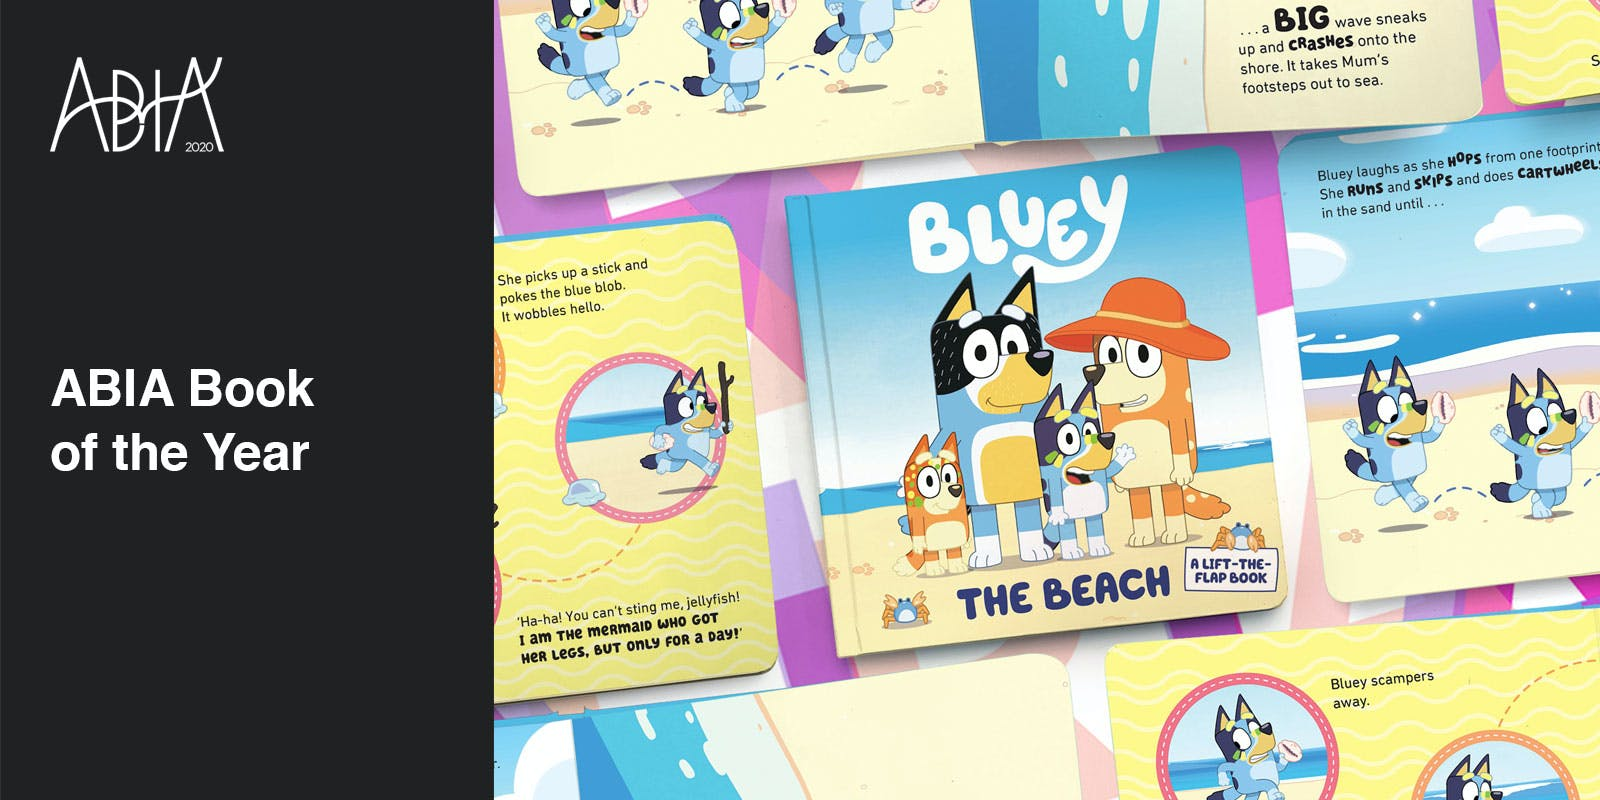 Bluey: the Beach wins 2020 ABIA Book of the Year